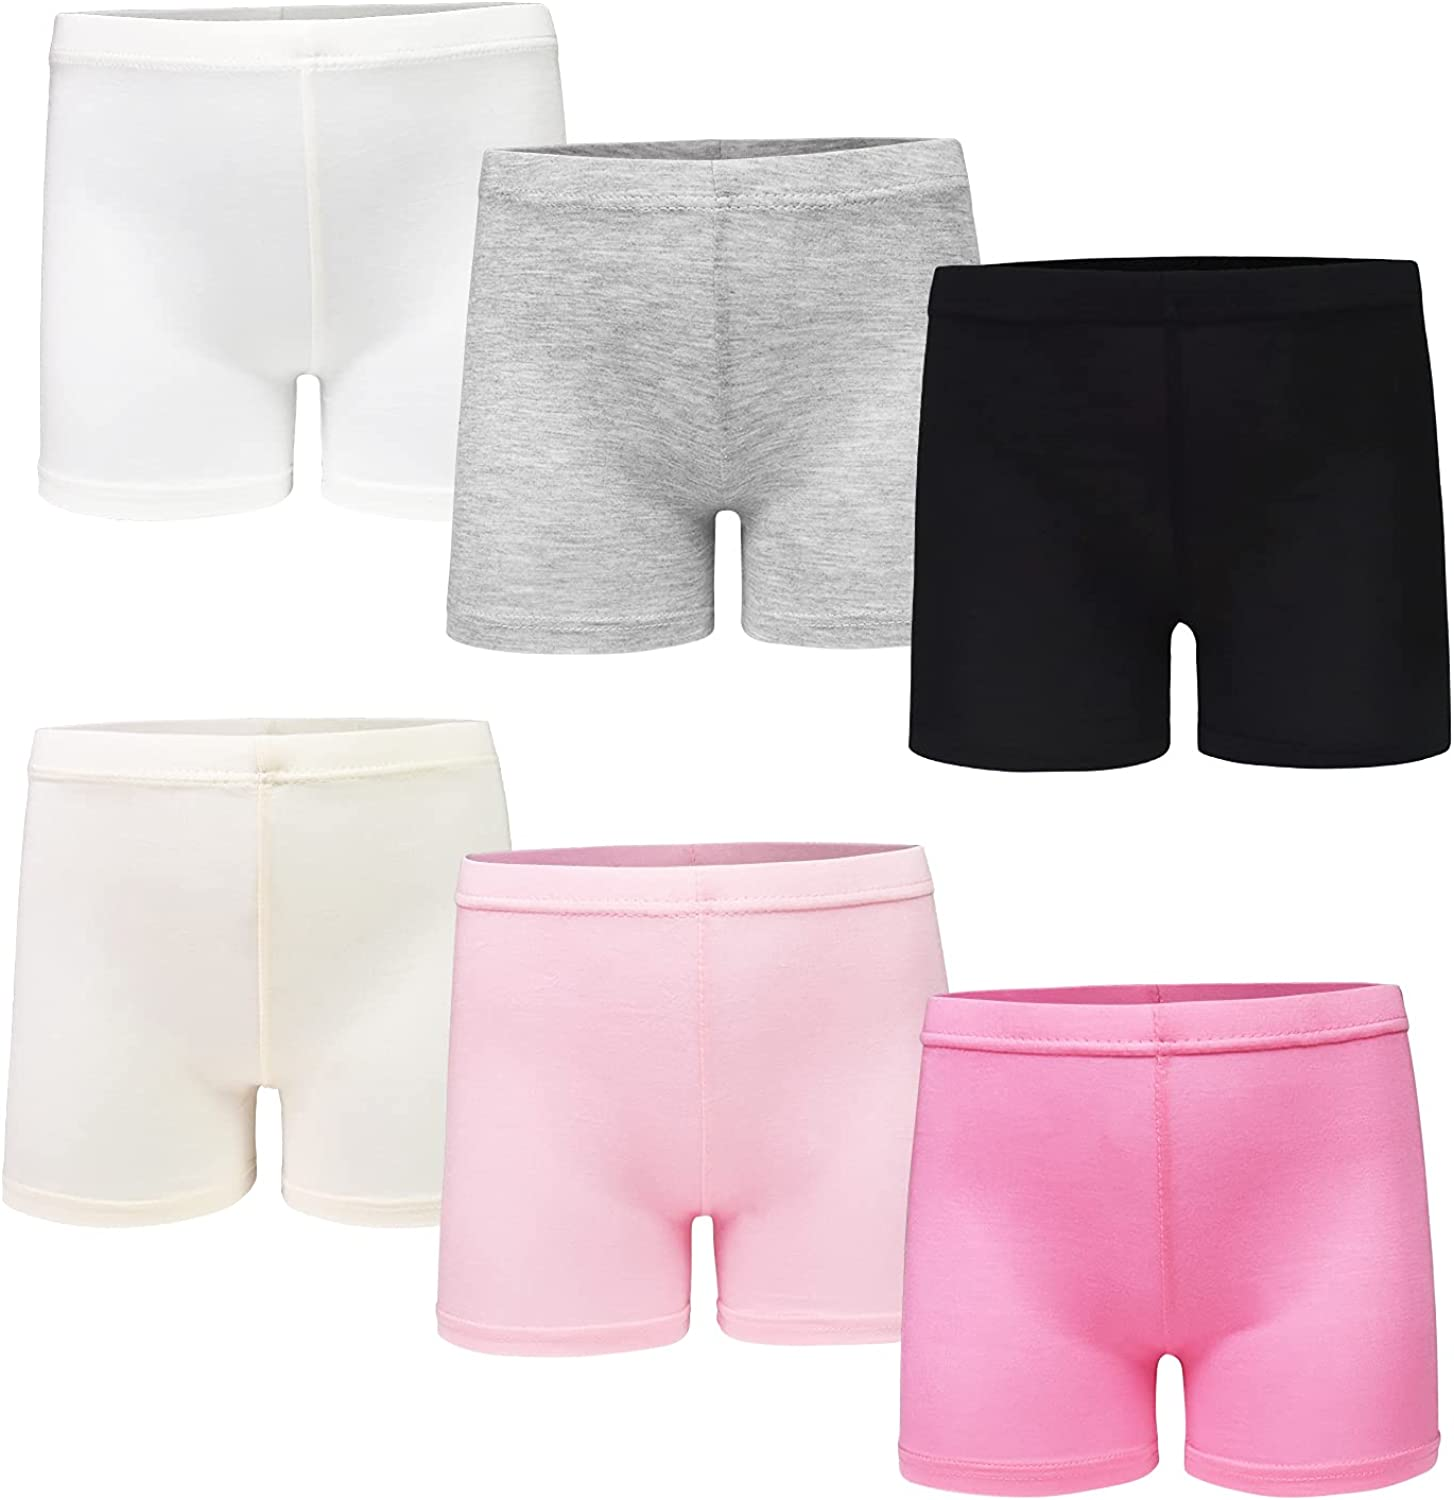 GENTABY Girls' Cotton Tights Short Breathable and Safety (Pack of 8) for 6 Colors